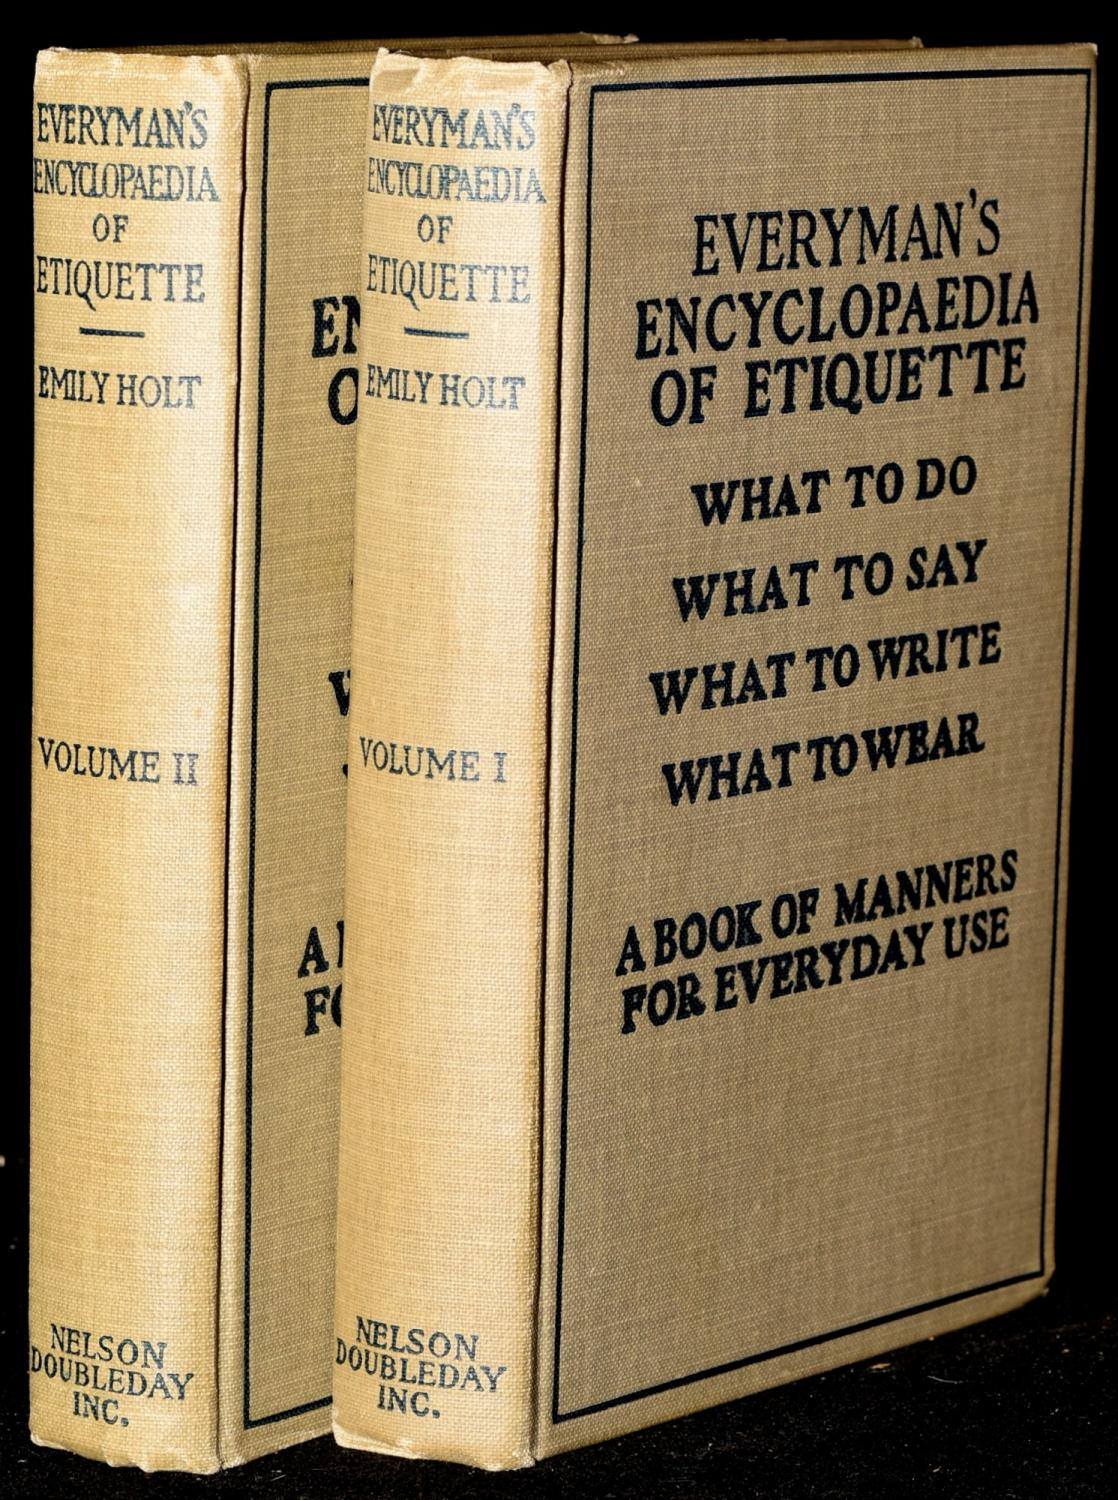 EVERYMAN';S ENCYCLOPAEDIA OF ETIQUETTE (2 VOLUMES) WHAT TO DO. WHAT TO SAY. WHAT TO WRITE. ...